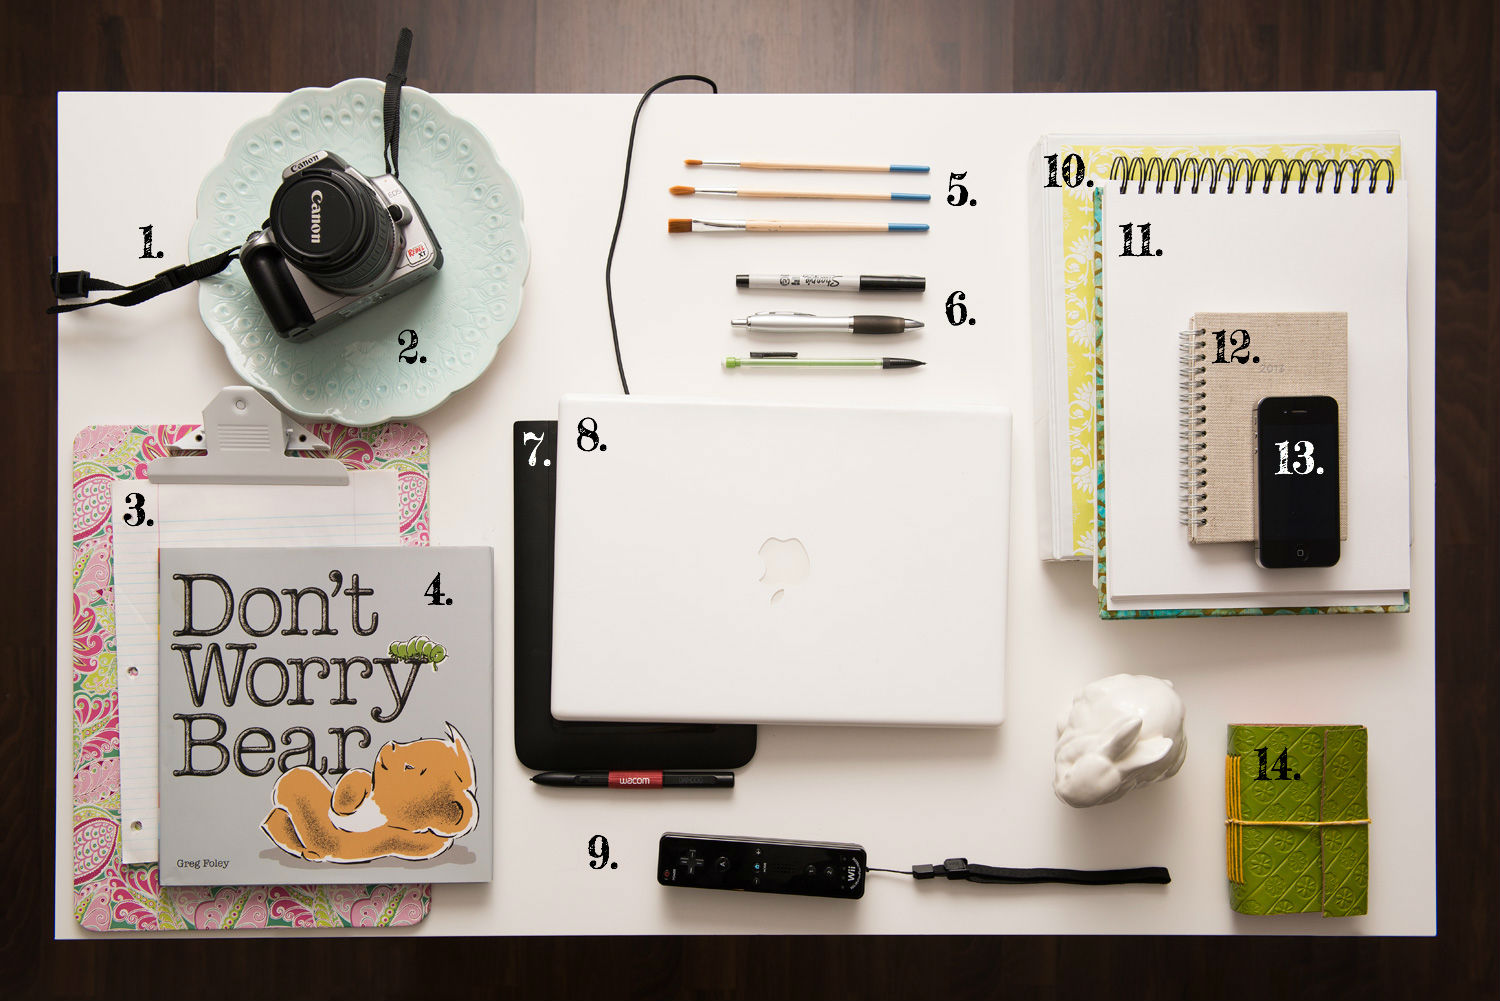 megan graphic designer pairedinc 09 05 2014 tools of the trade 0 0 ...